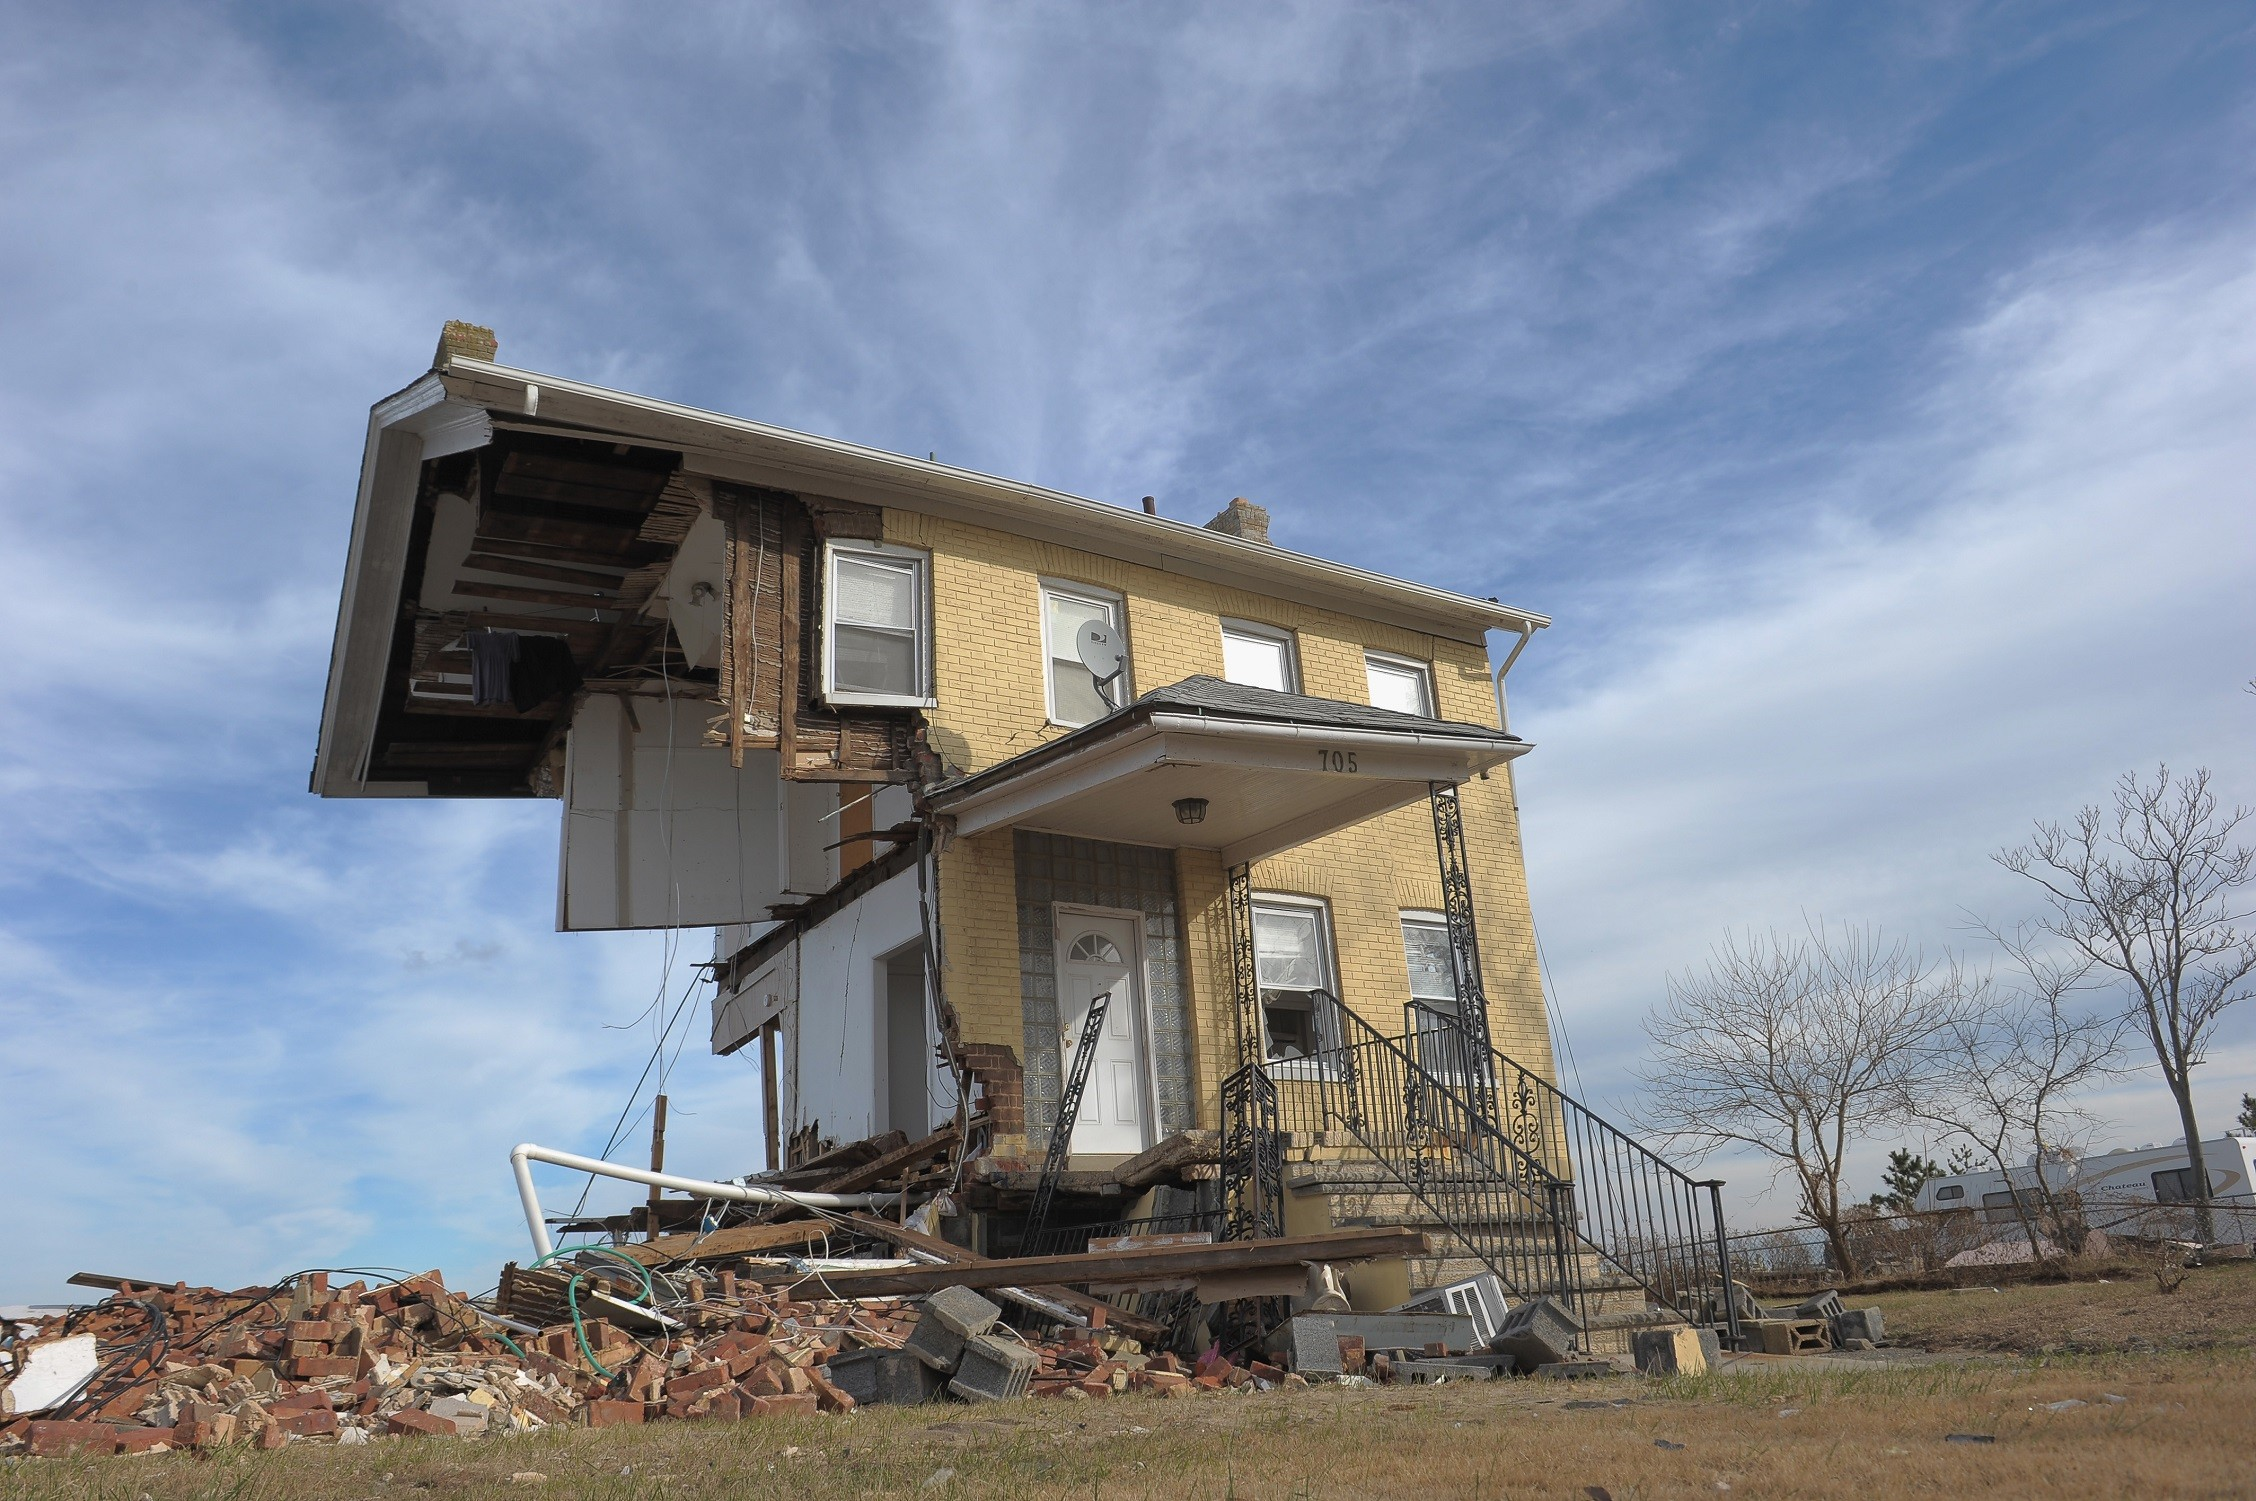 Princess Cottage Inn, Union Beach, N.J., sustains terrible hurricane damage from Sandy in 2017.